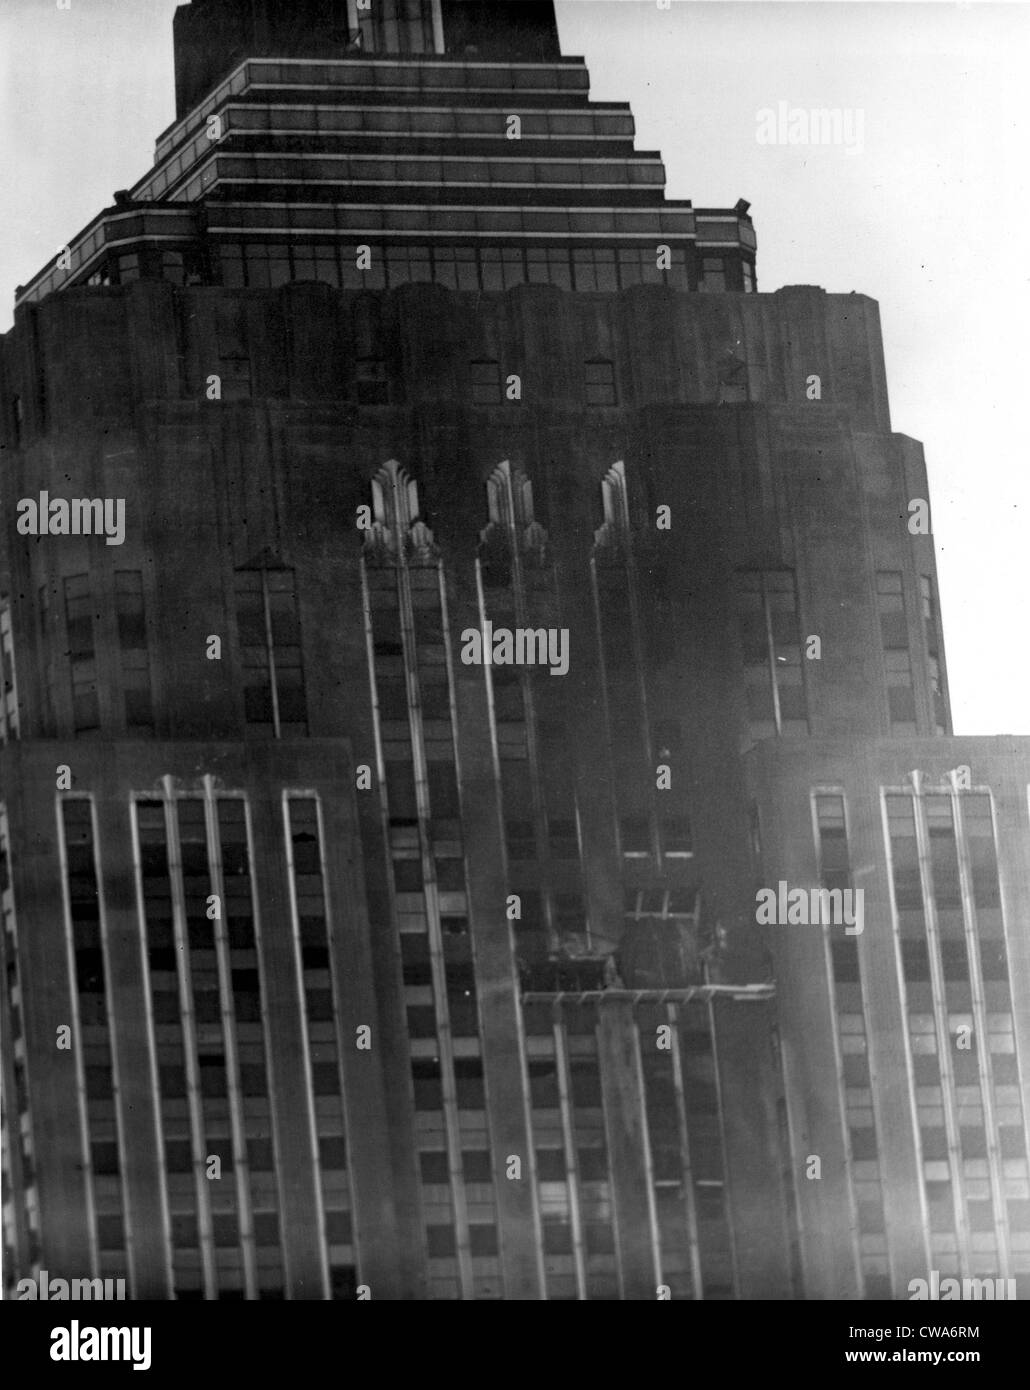 NEW YORK--This is how the south side wall of the Empire State Building in New York appears the day after an Army - Stock Image